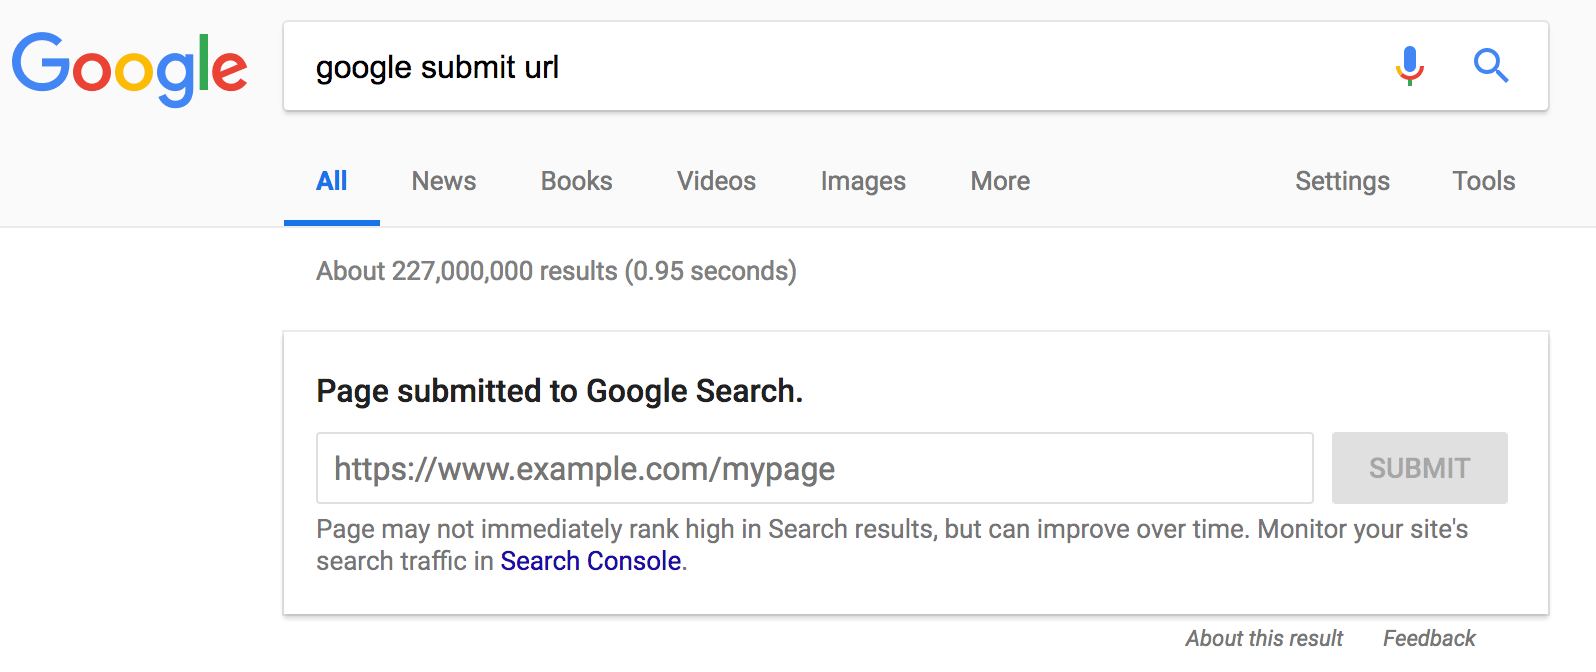 google-submit-url-public-tool-search.